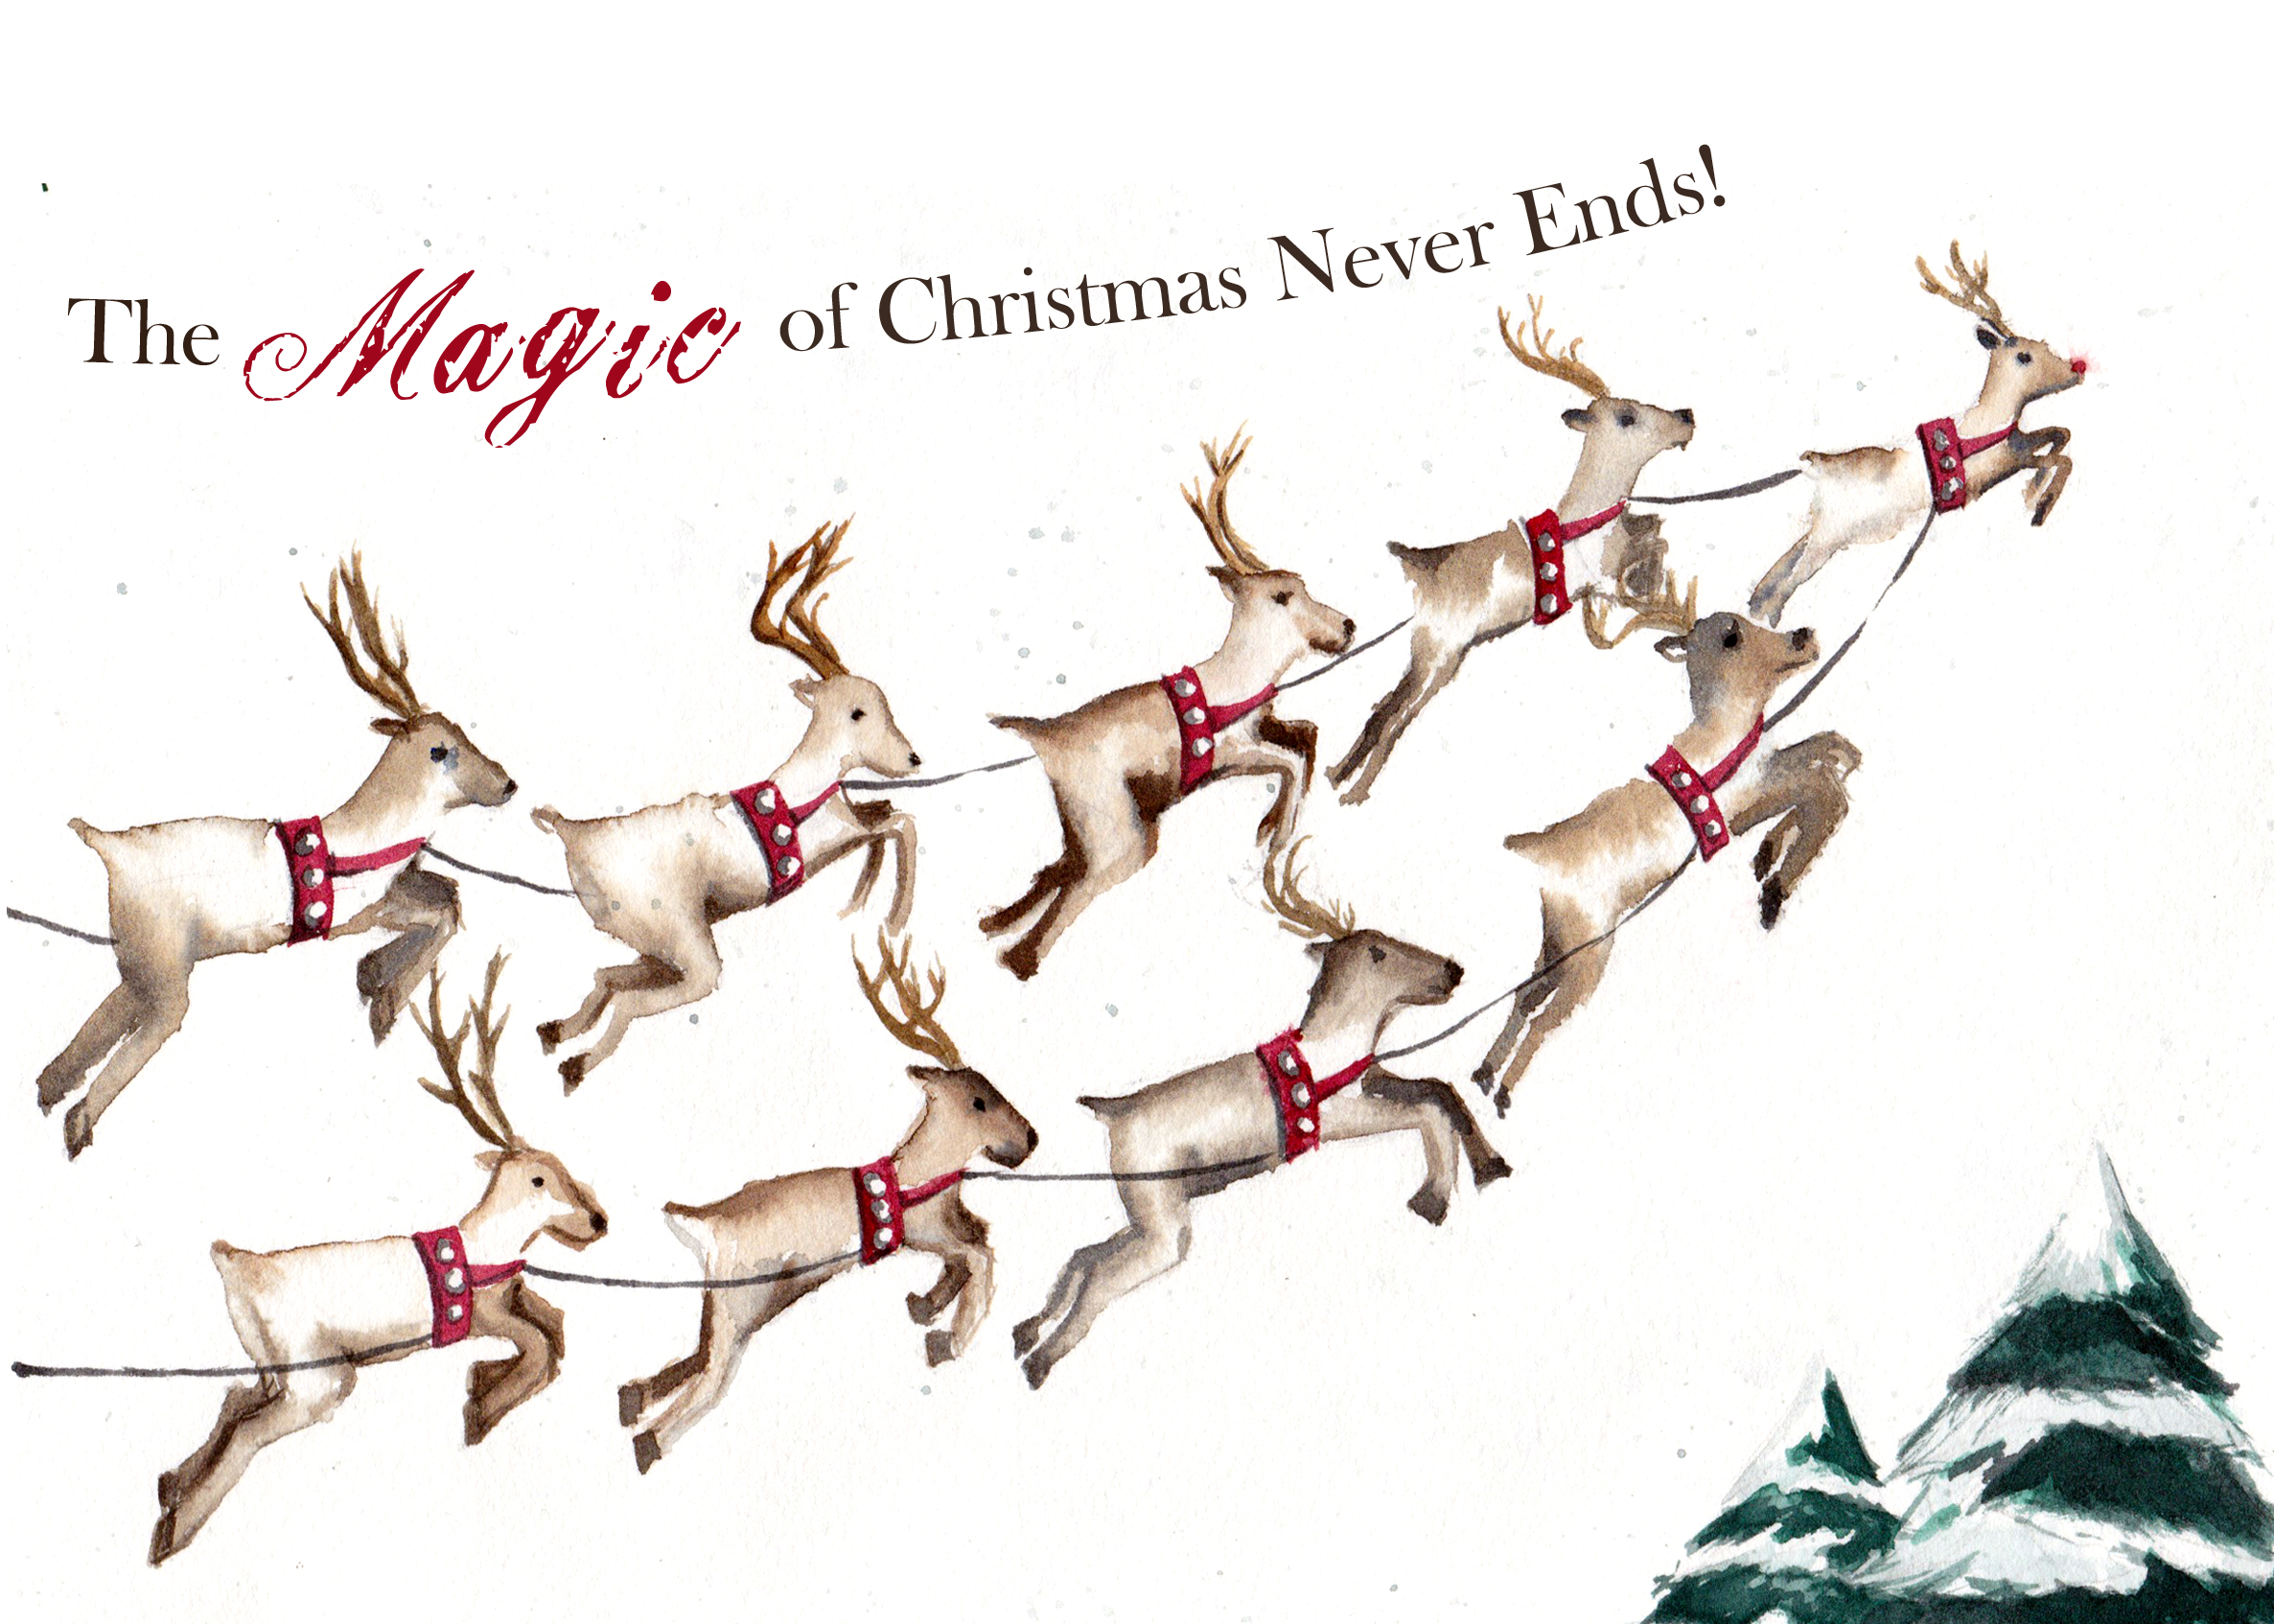 """""""The Magic of Christmas Never Ends"""" is a watercolor painting of 9 flying reindeer printed on premium cardstock by artist Esther BeLer Wodrich"""